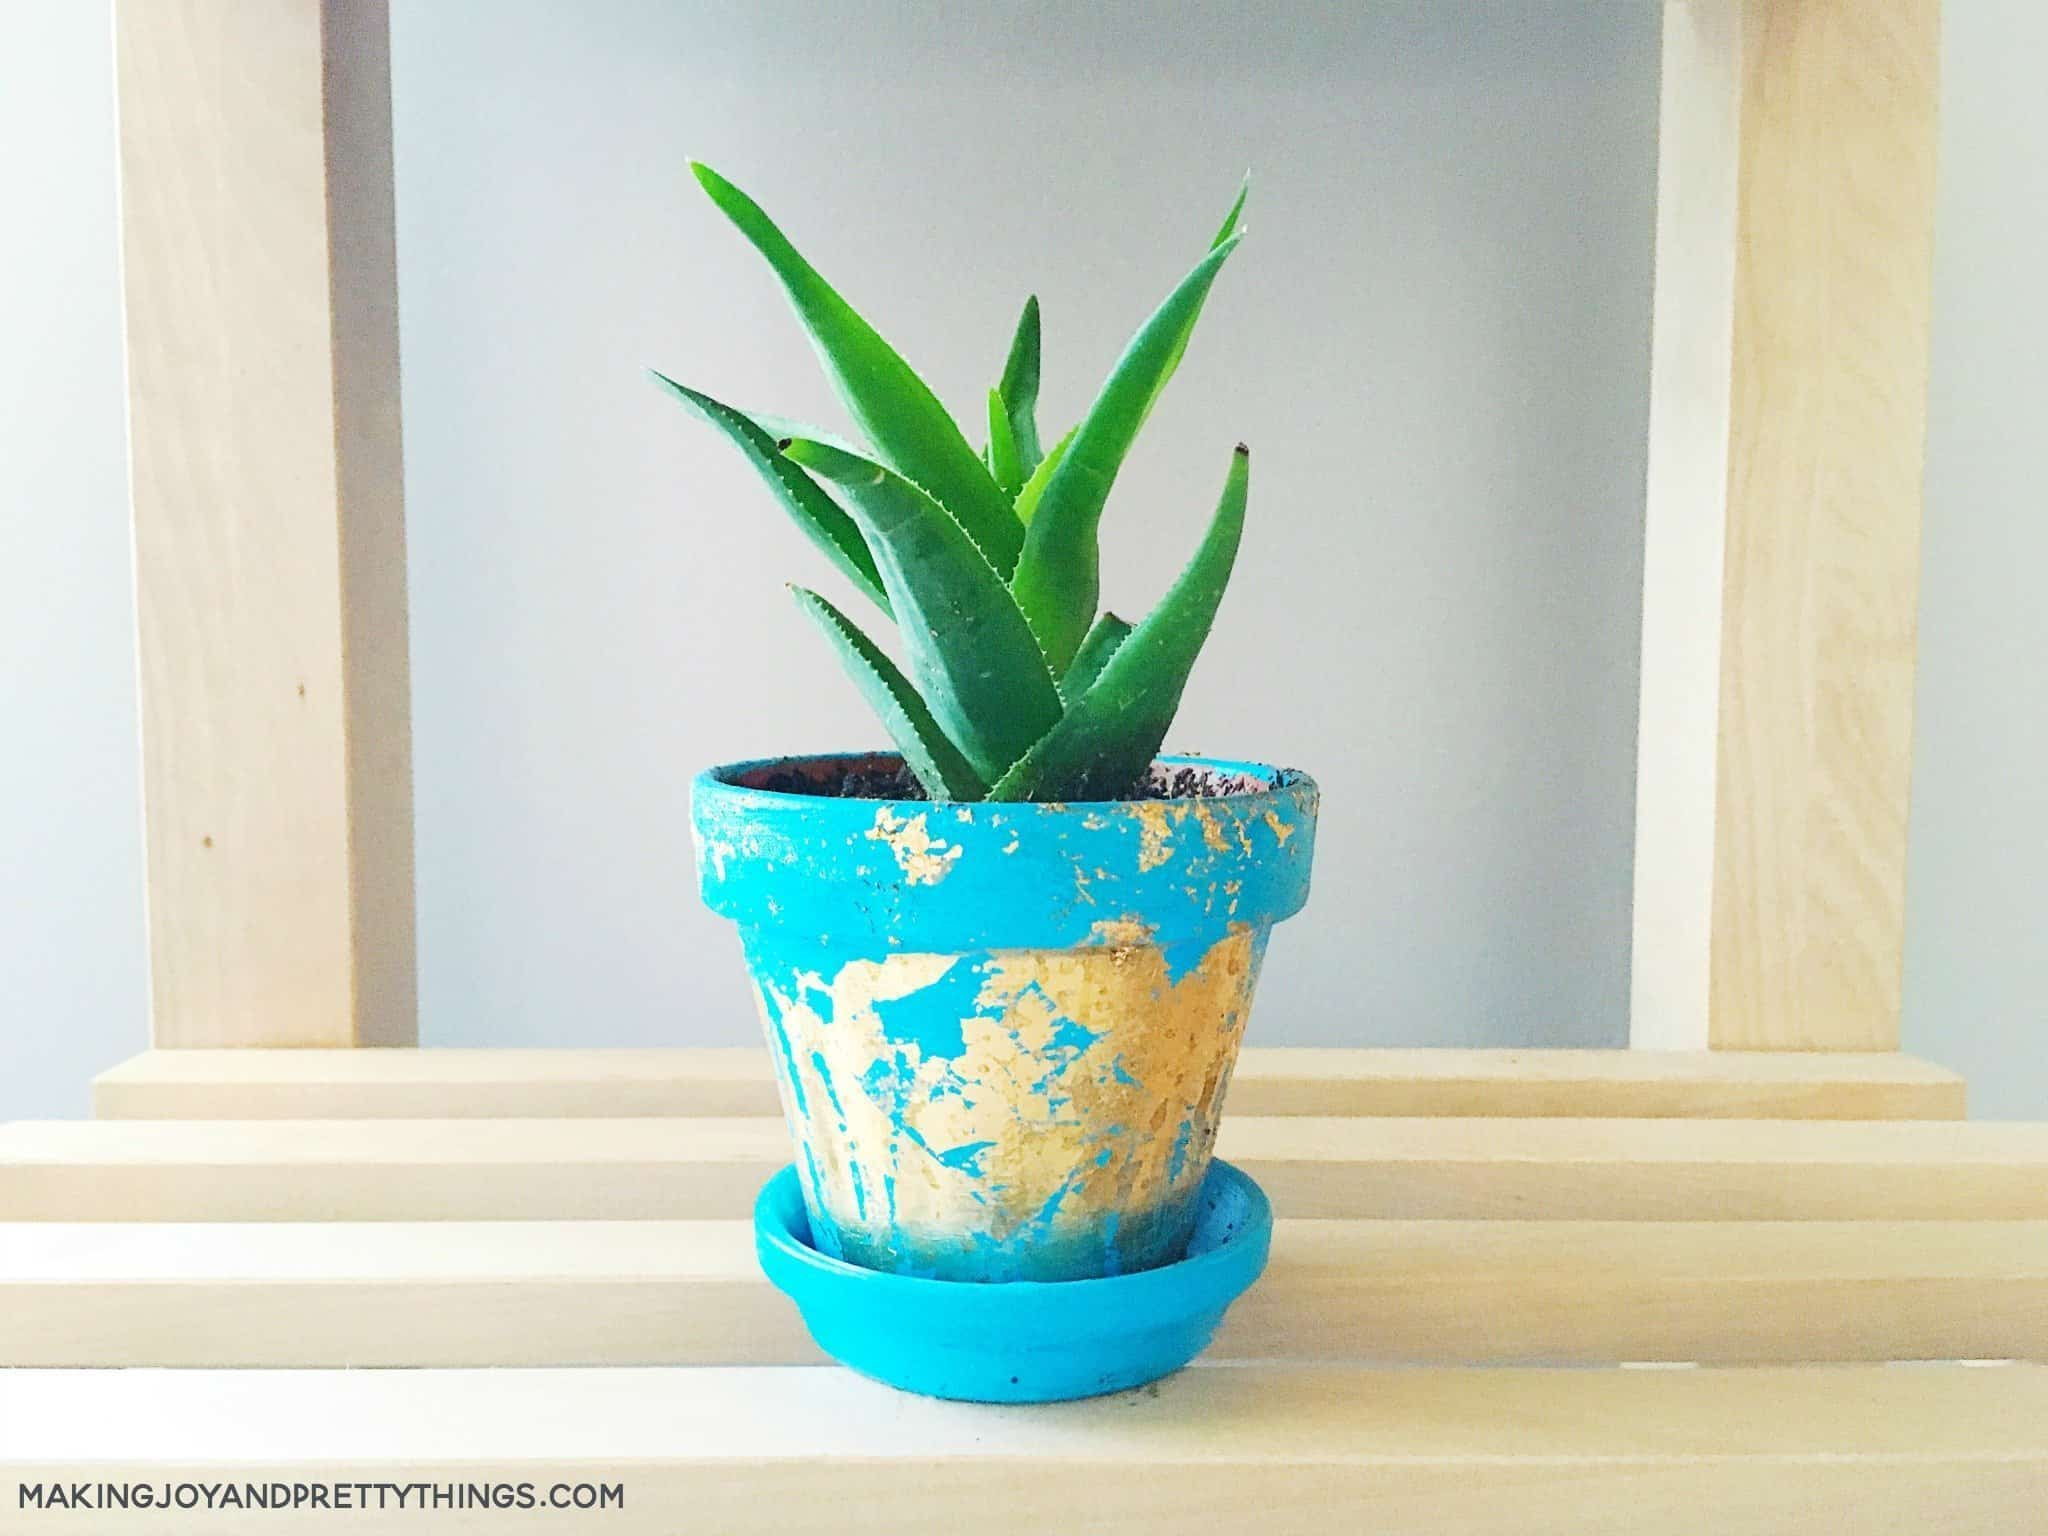 DIY Gold Foil Painted Pots or planters. Easy DIY craft to make for spring and summer. Would make great DIY gift for friends or teachers! Plant with succulents or small plants to bring some greenery into your home